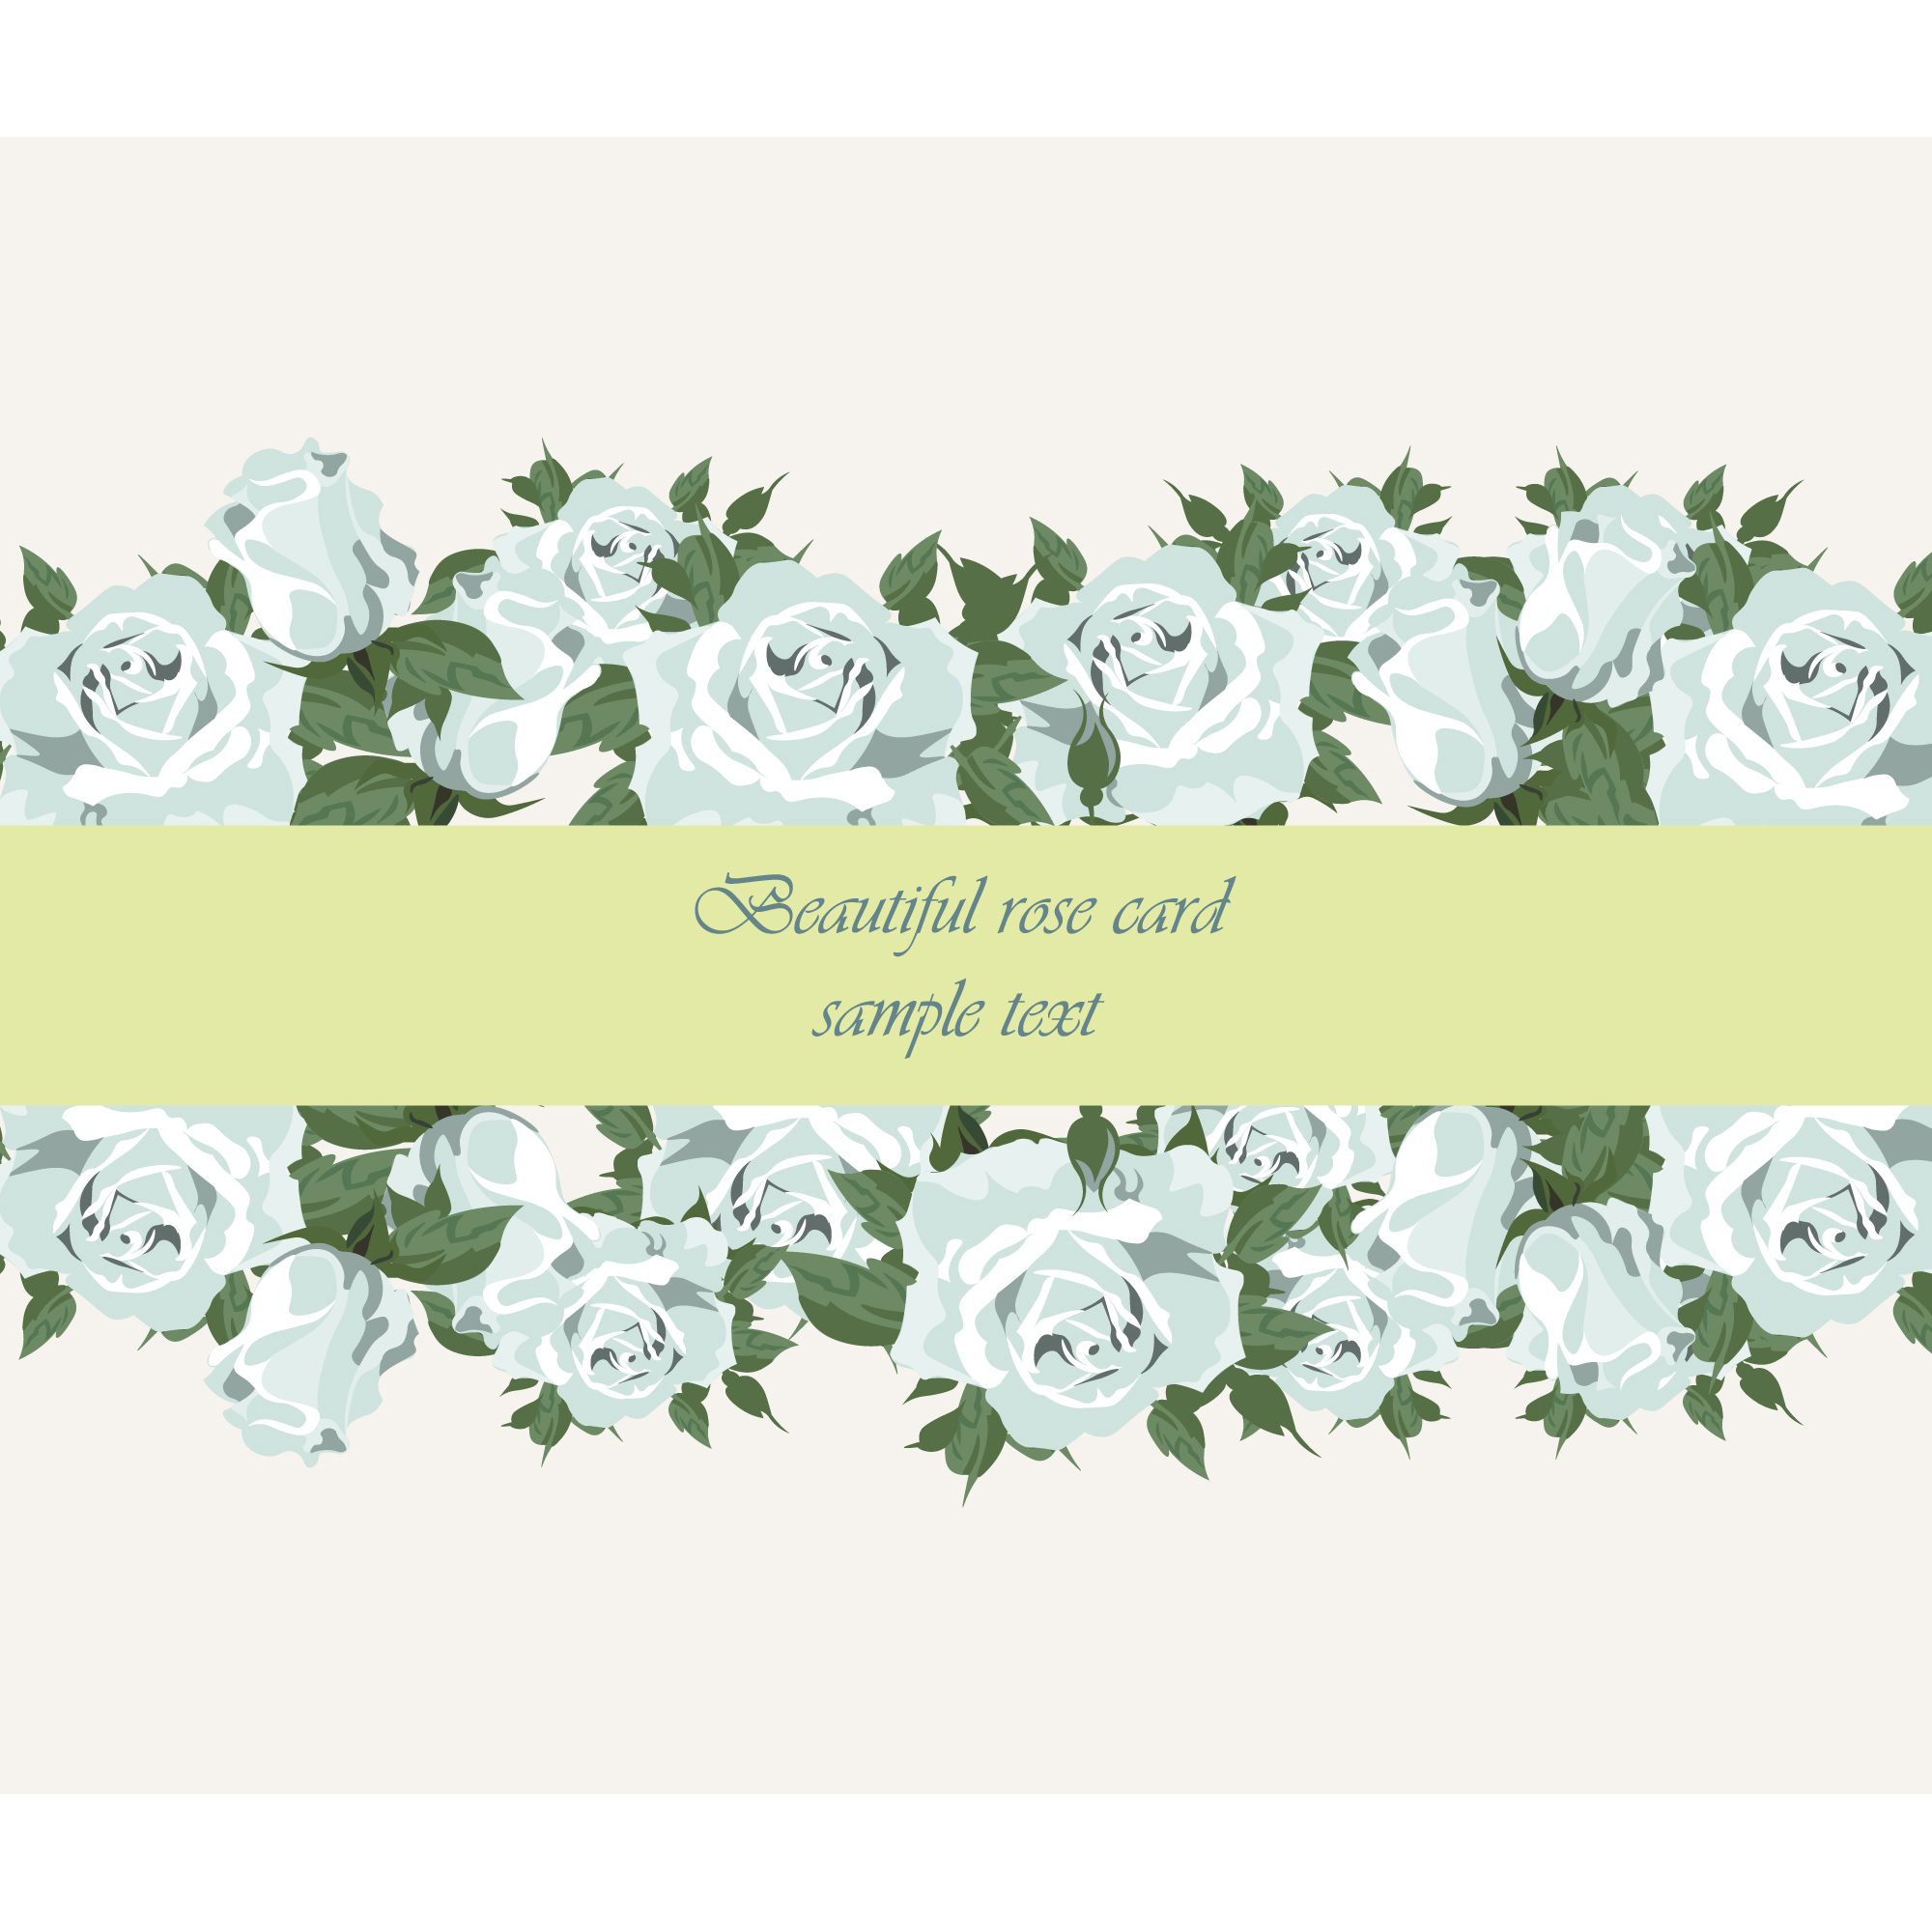 Beautiful rose card design